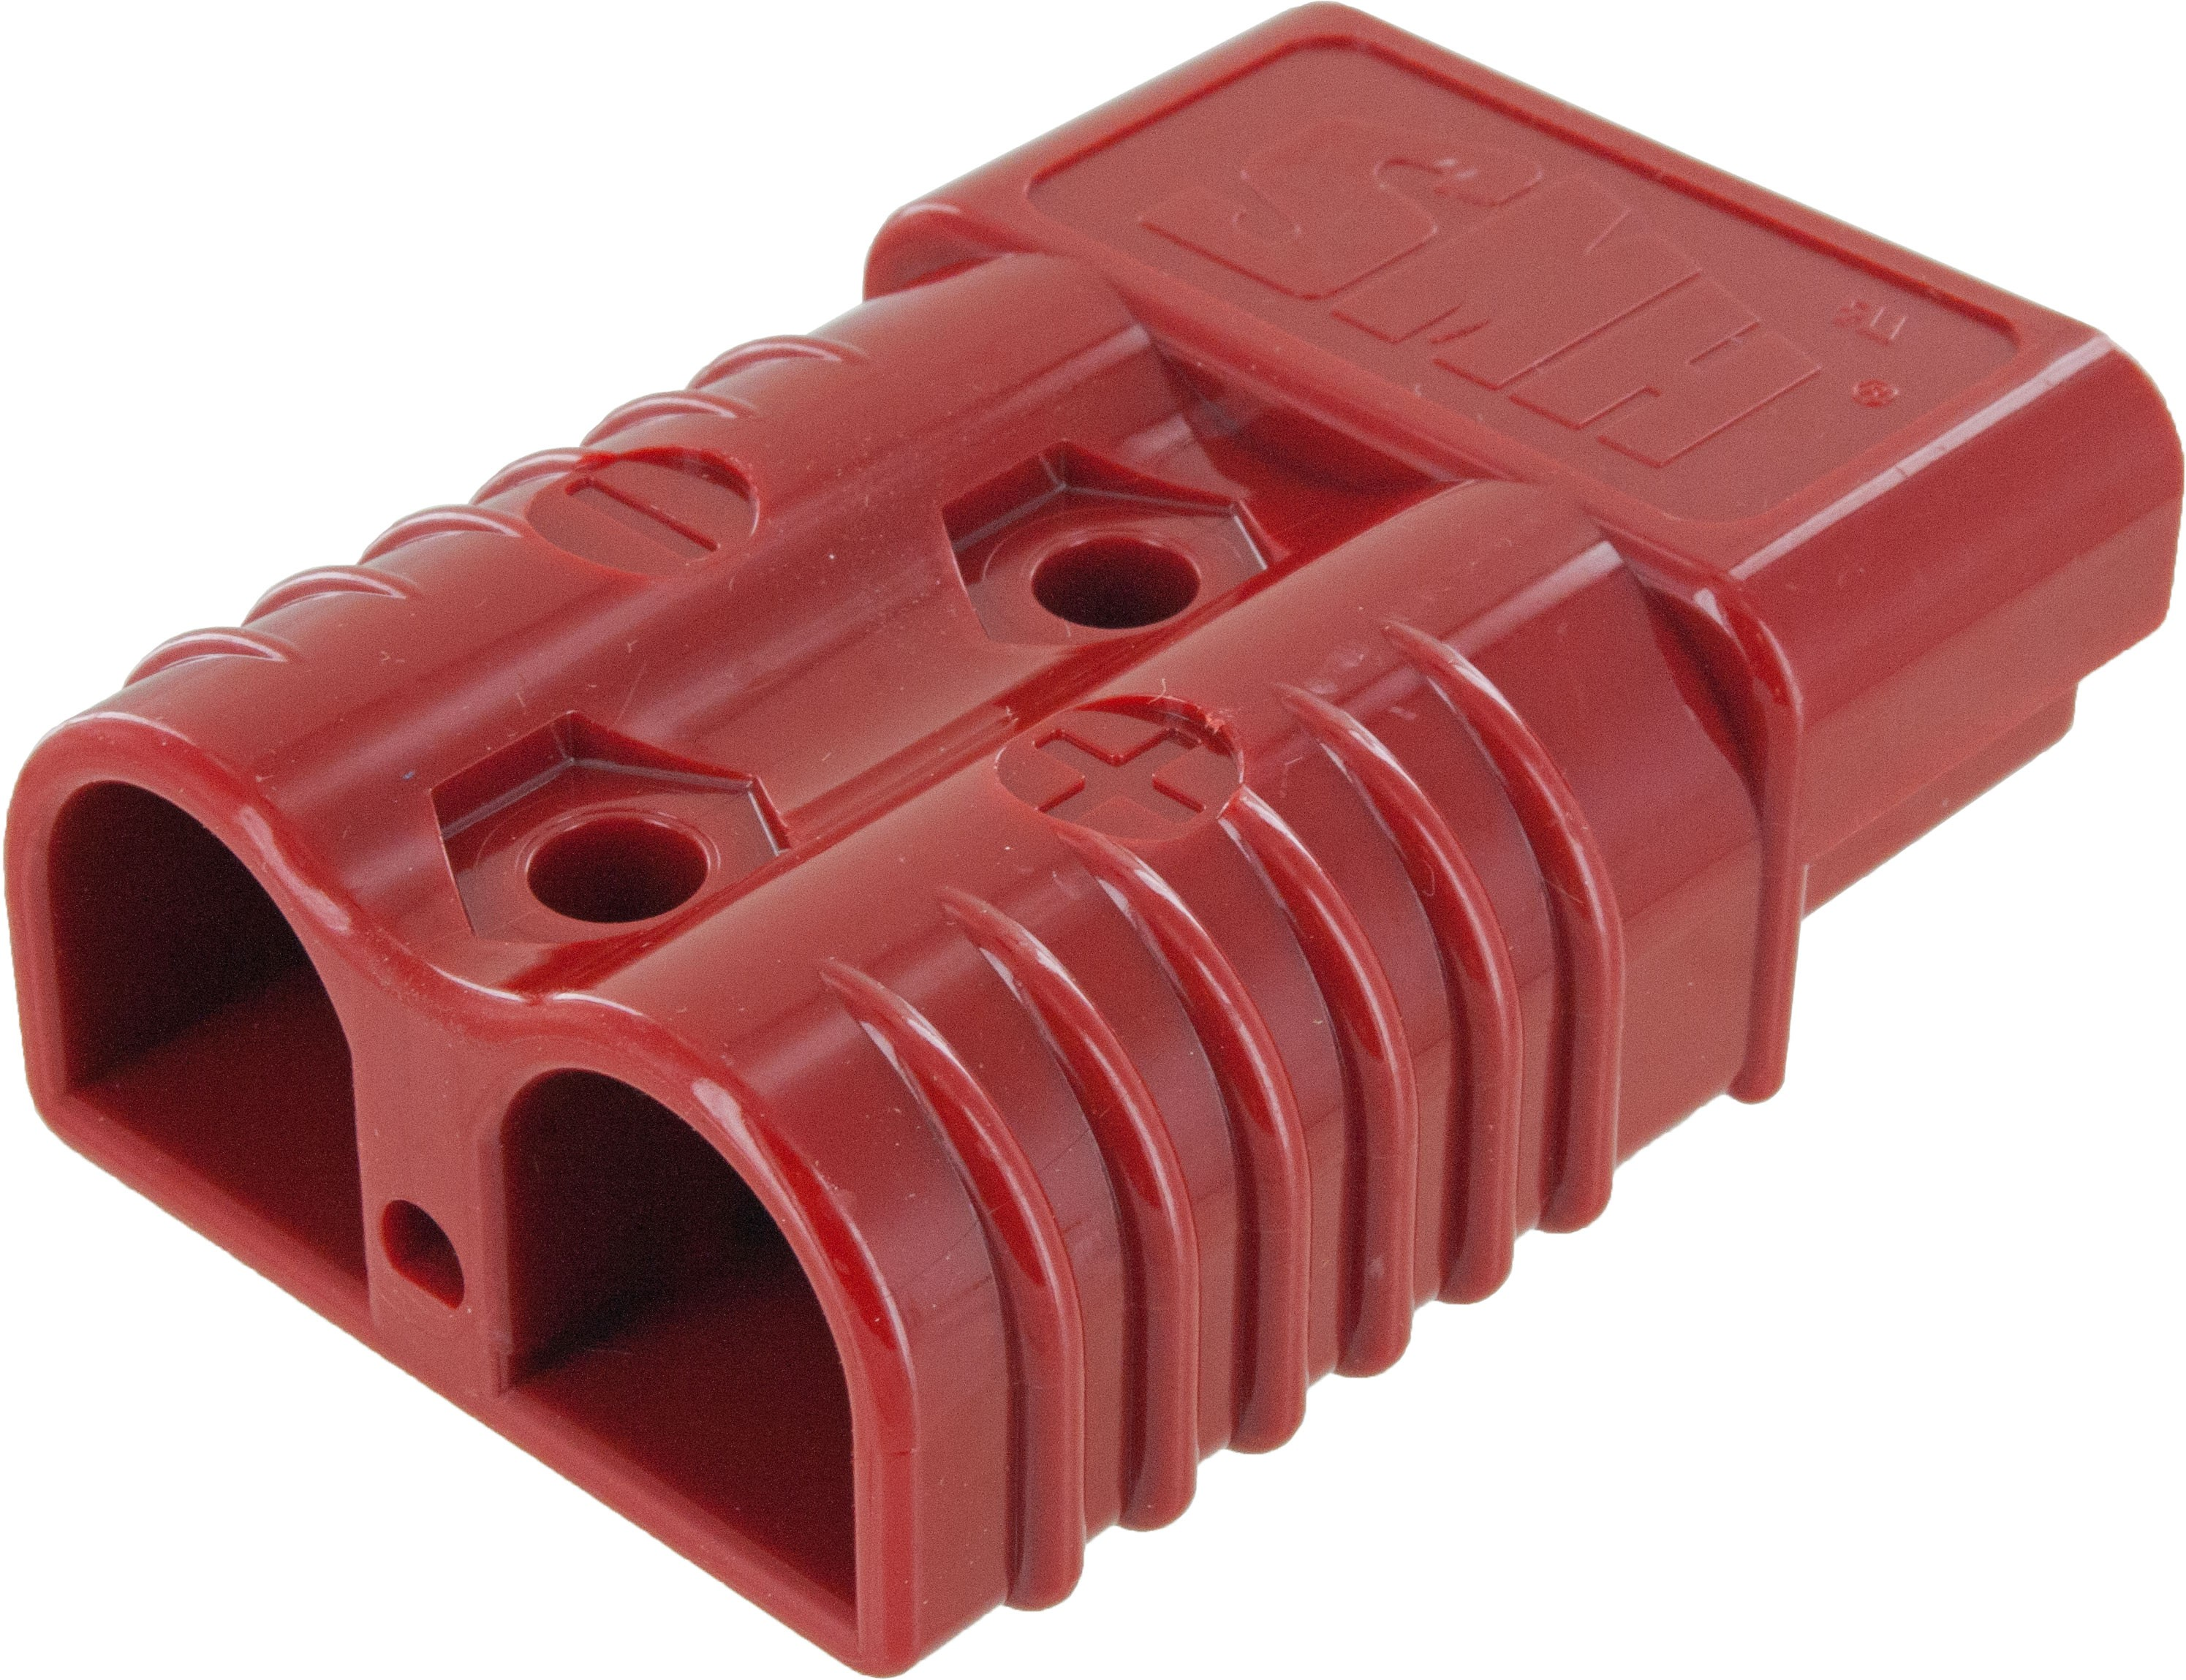 Battery Connector Housing 4-1/0 Awg 175 Amp Red Front